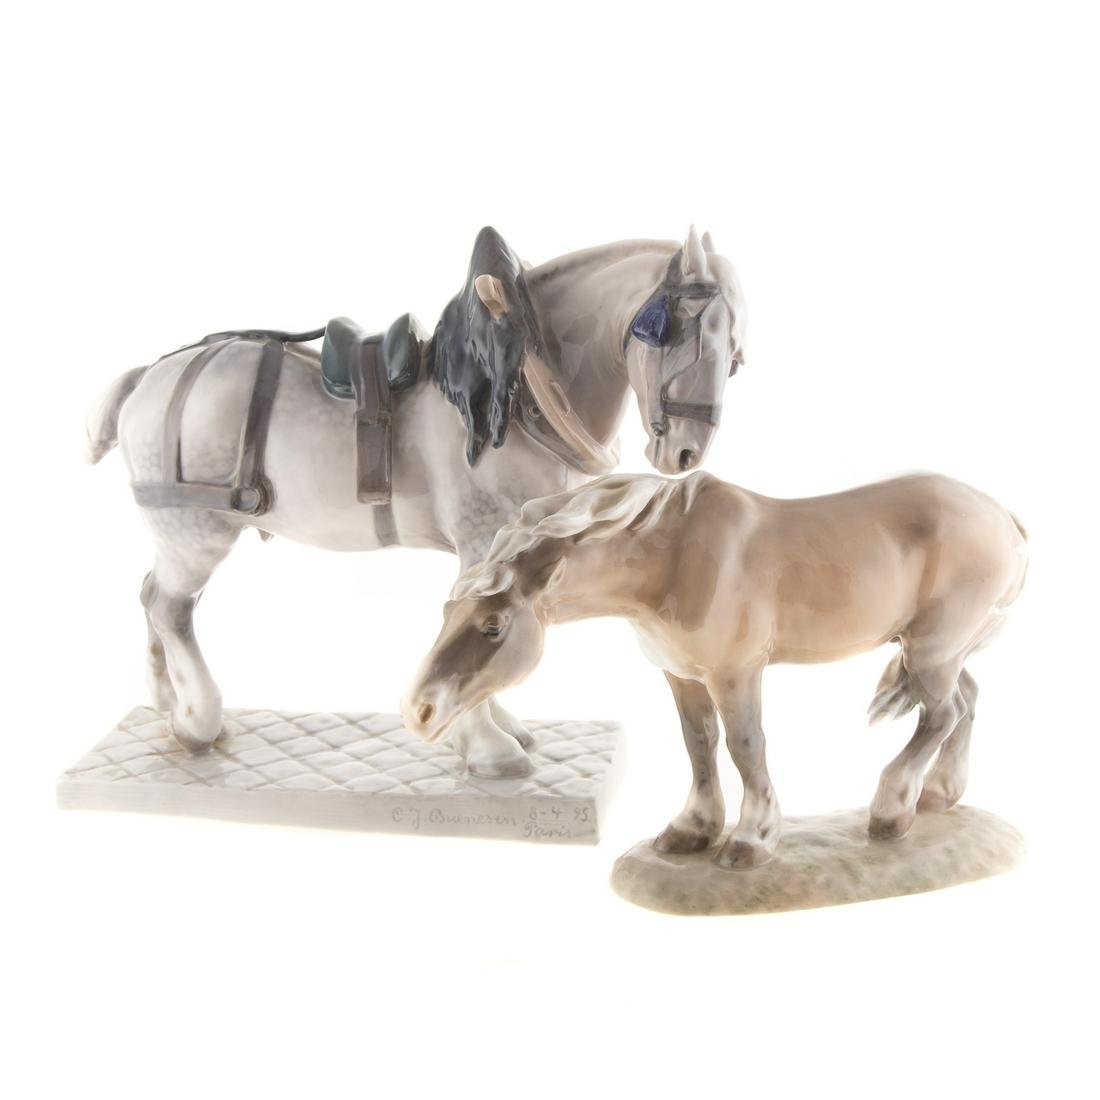 Two Royal Copenhagen Horses